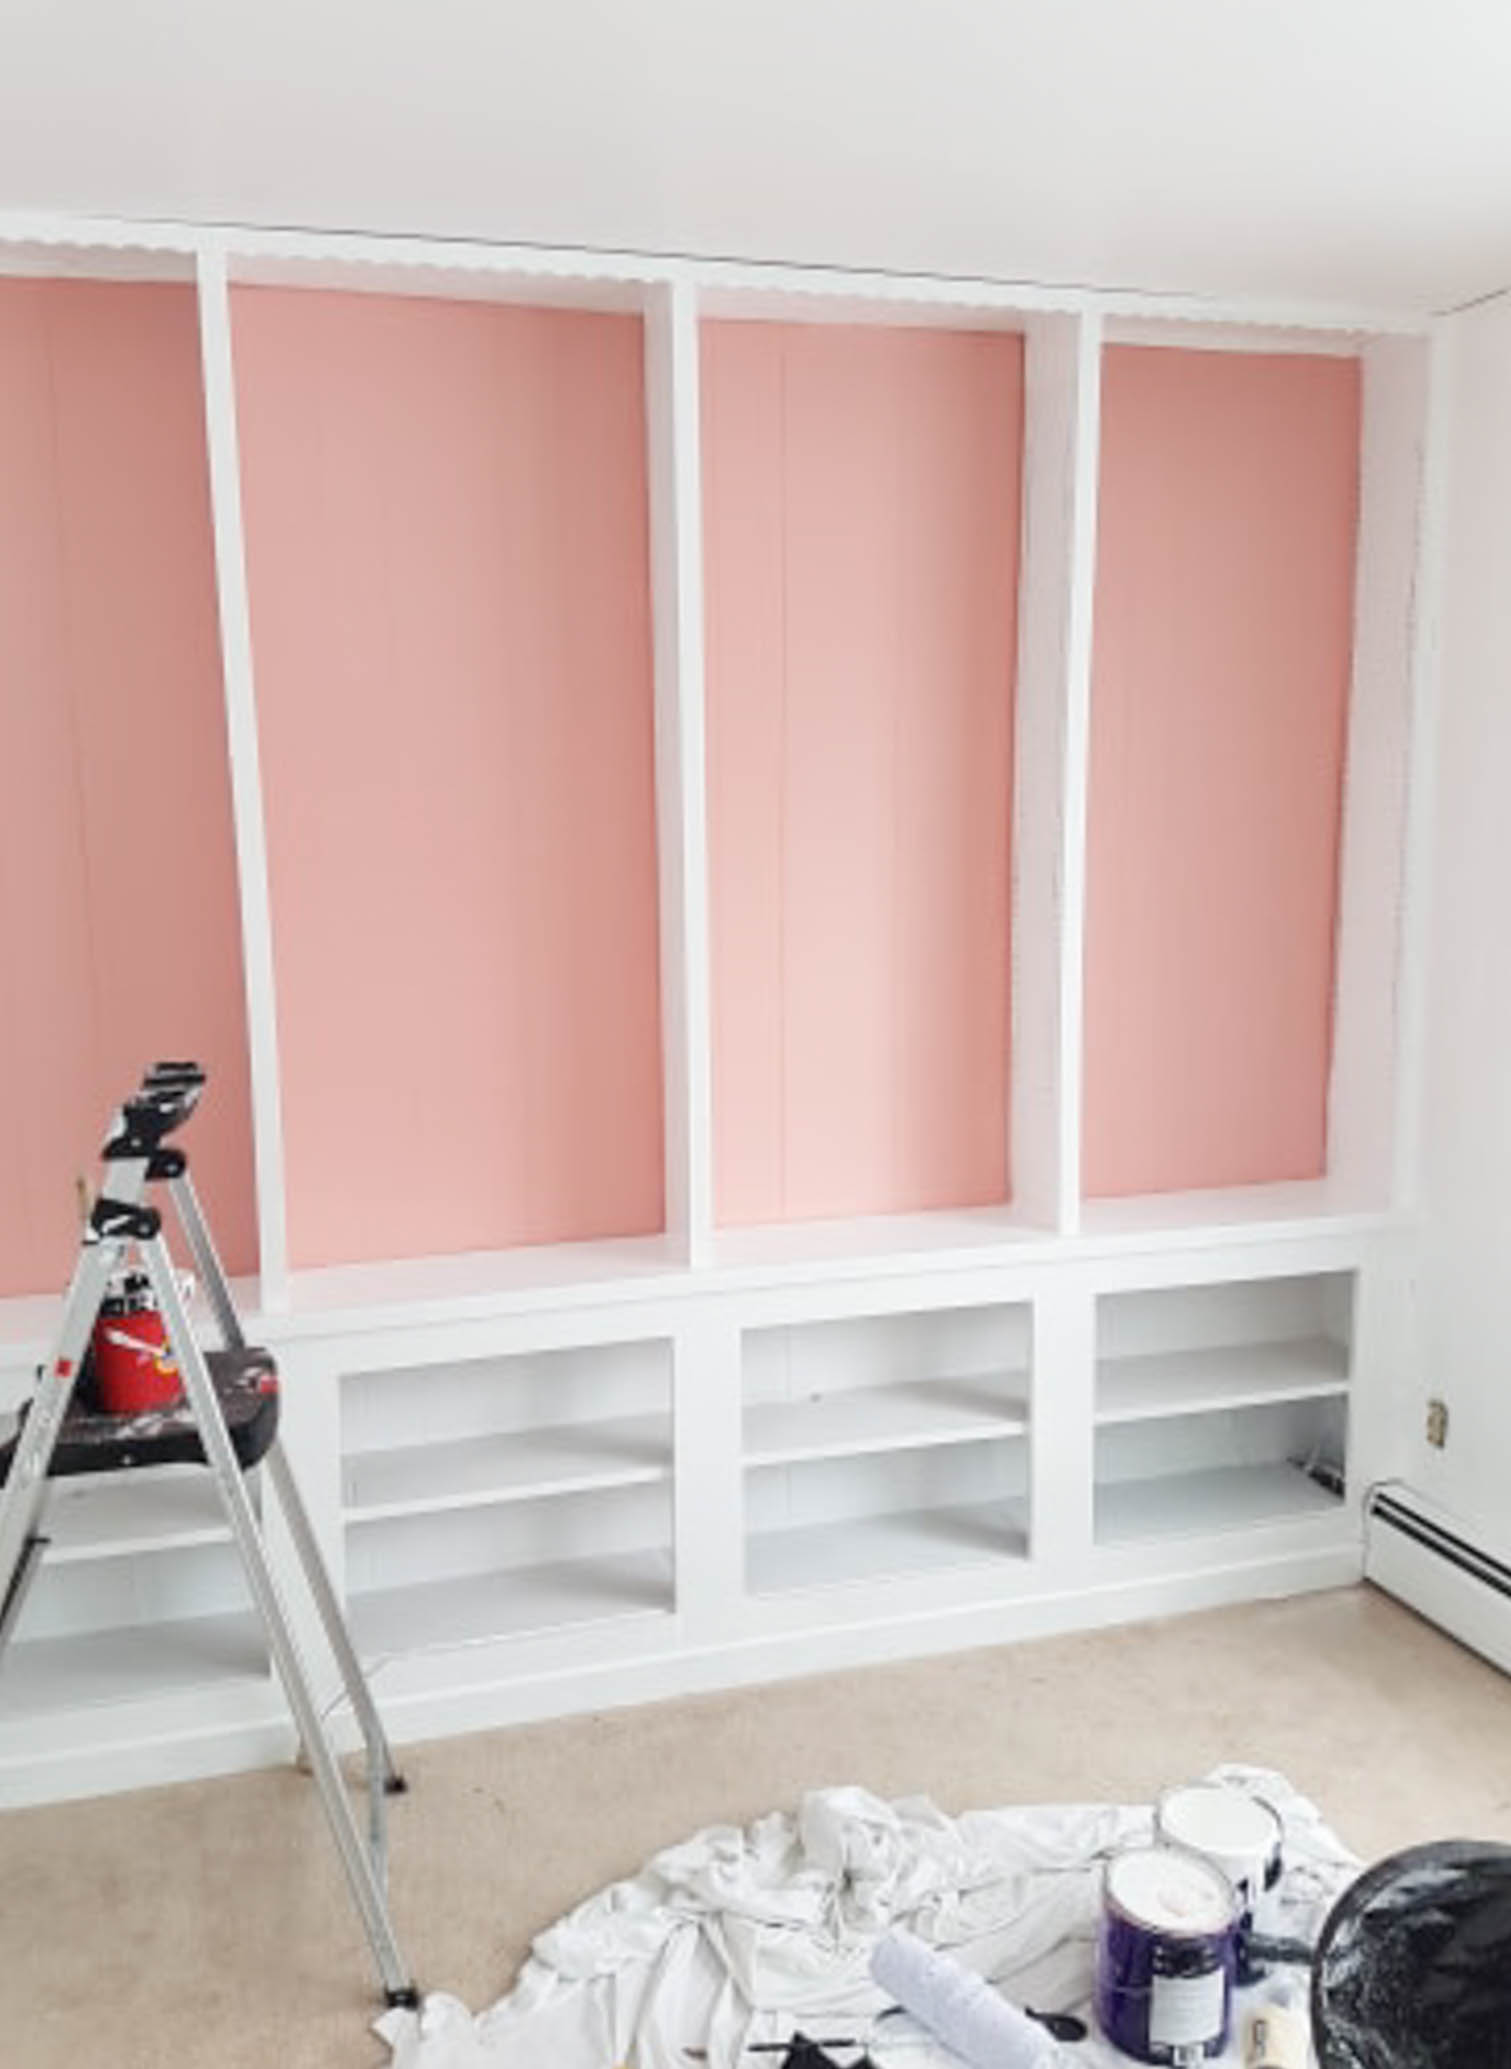 We painted our wood panelling in a bright white and Noble Blush (pink) from BEHR paint, to create a feminine and colourful home office space.